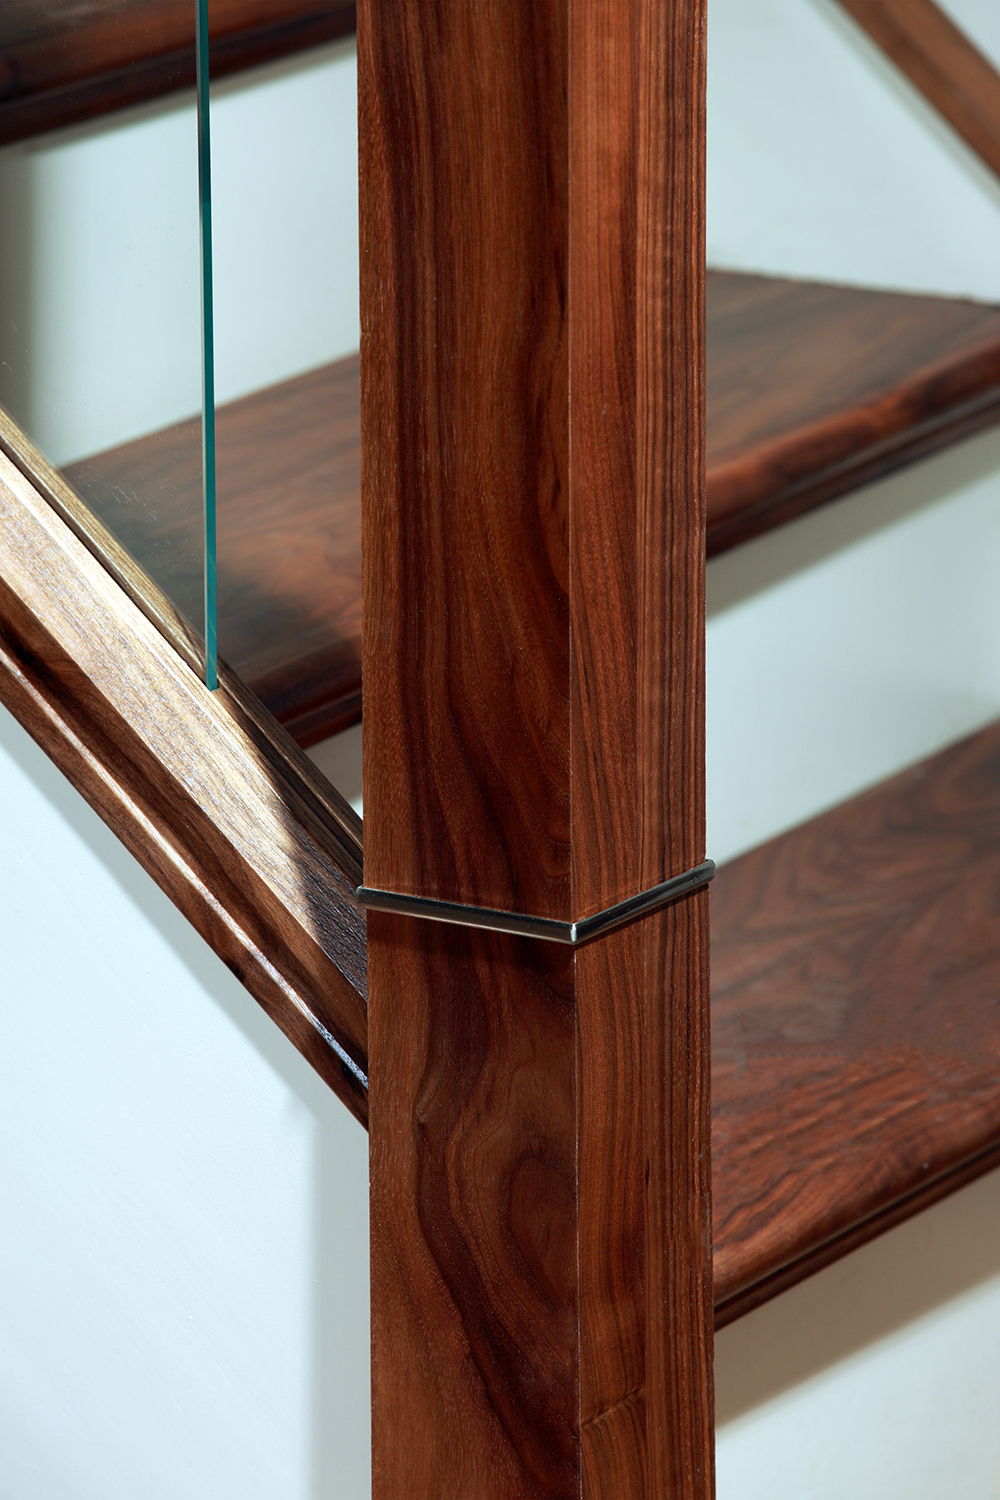 After picture: newel post and cap